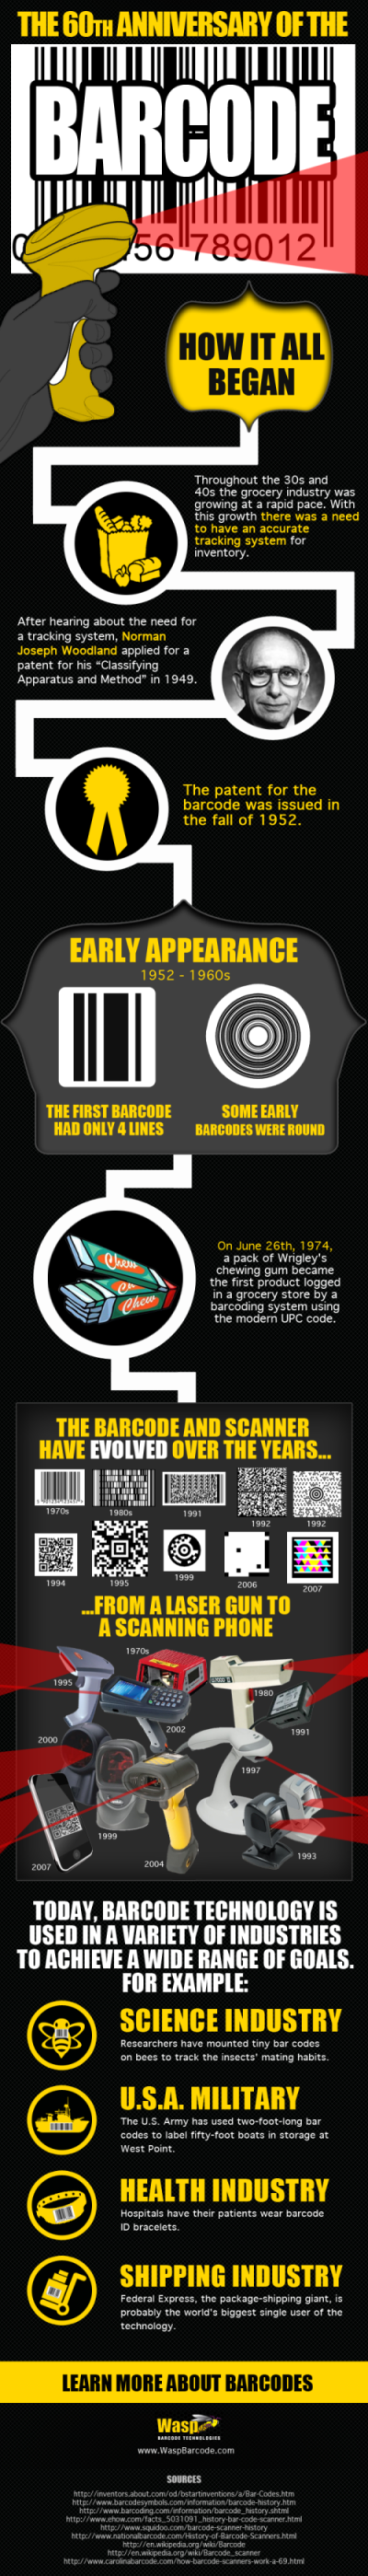 60th Anniversary of the Bar Code infographic